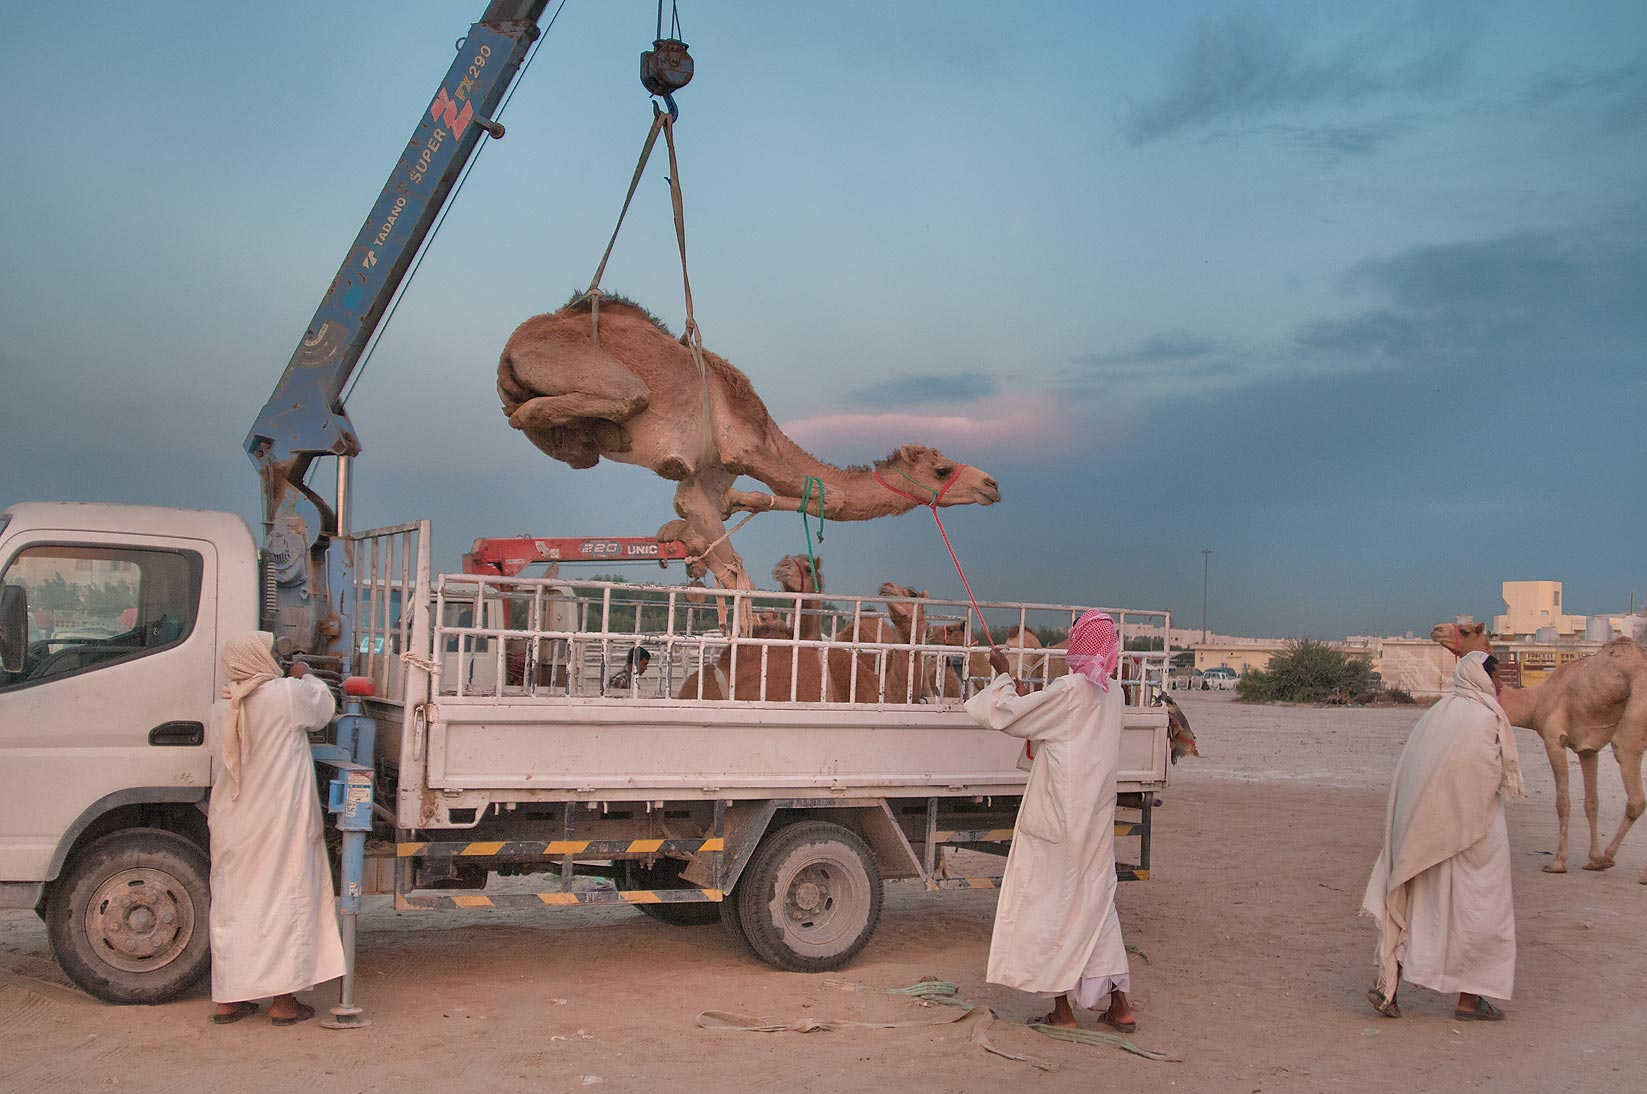 Unloading a camel from a truck by crane in Camel...Souq), racing section. Doha, Qatar